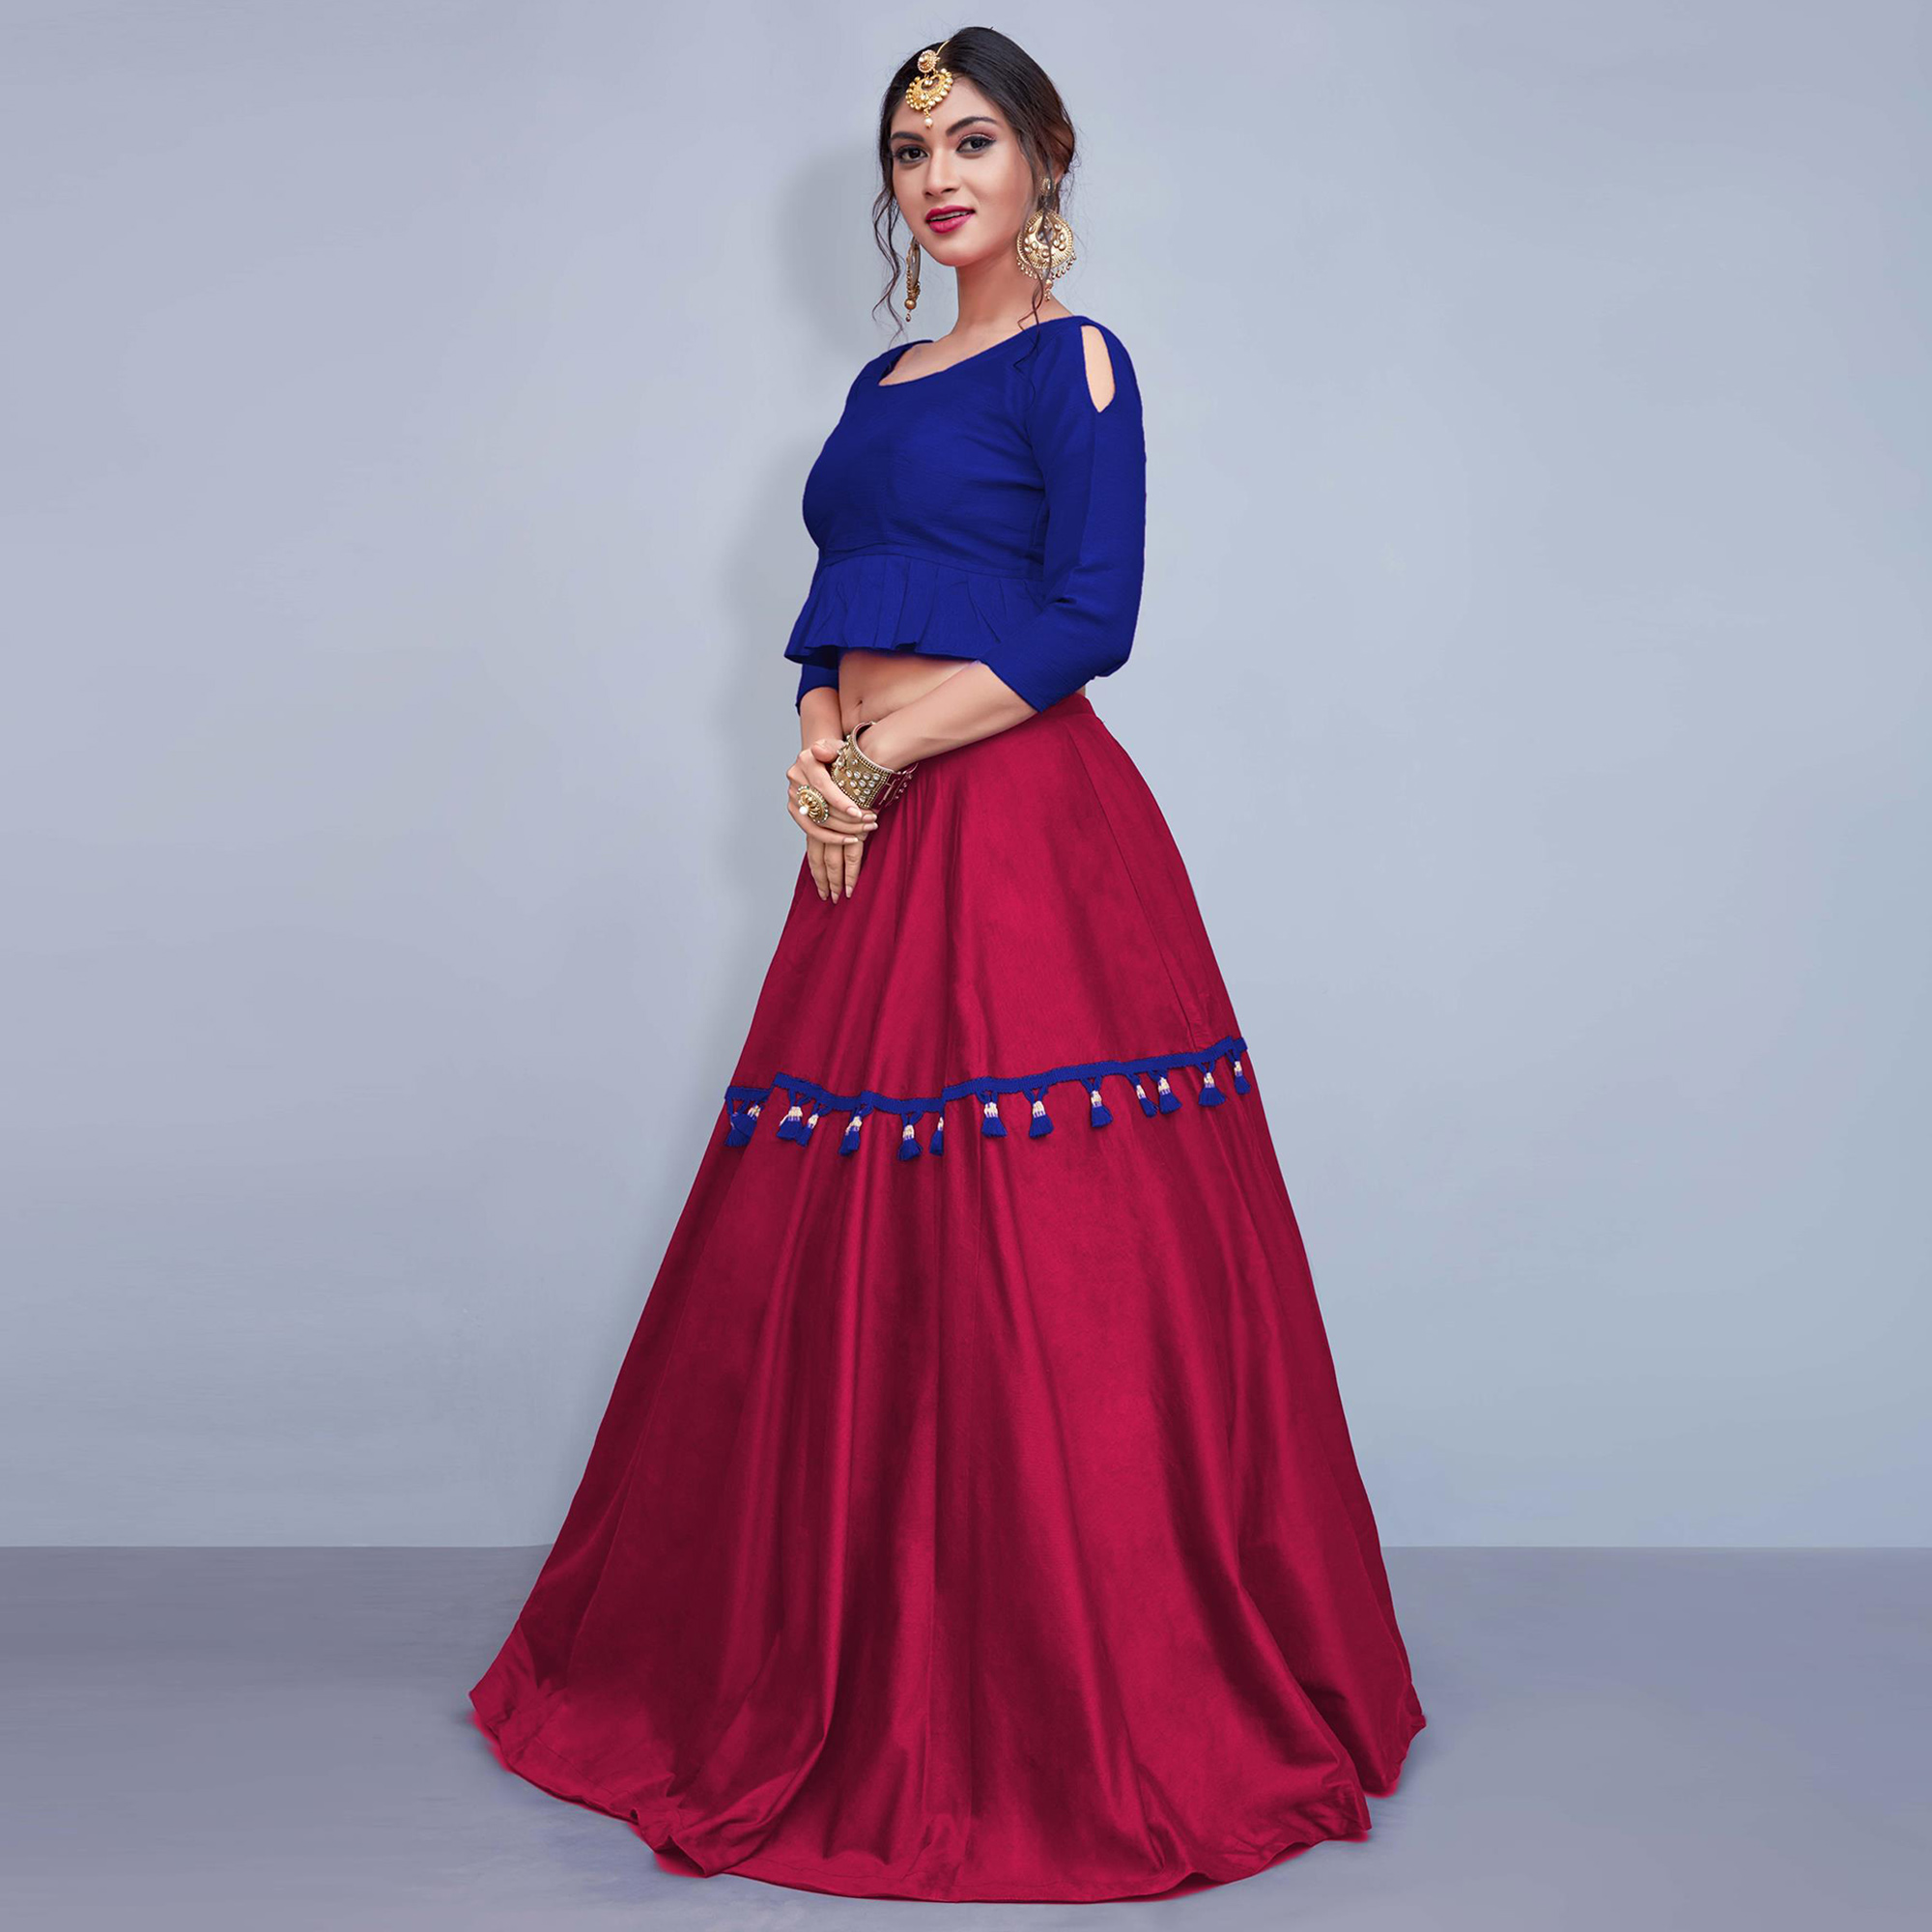 Sensational Deep Pink Colored Party Wear Fancy Cotton Lehenga Choli